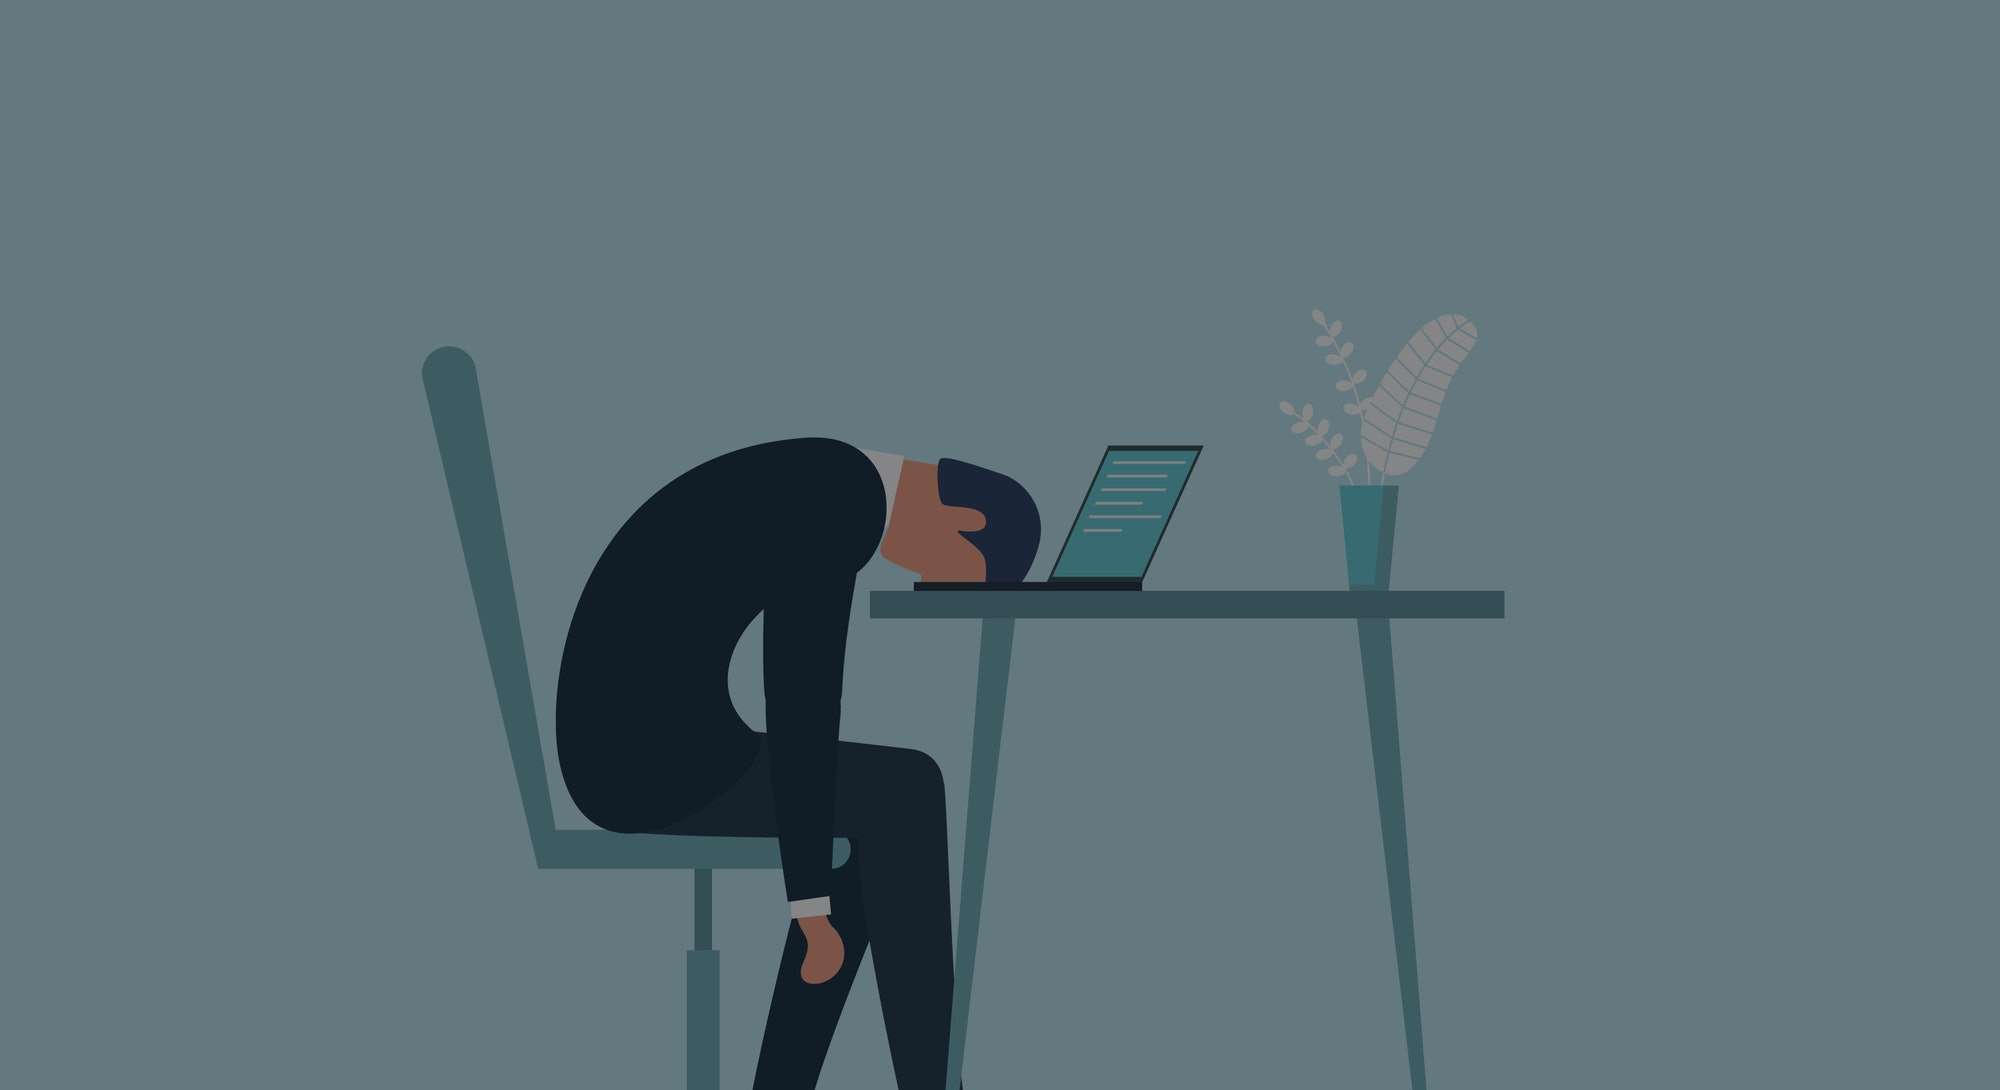 A man in an office suit can be seen having burnout at his desk. The dominant colors in this illustration are black, white, teal, blue, green, and off-white. He looks tired and has his head resting on its open laptop.